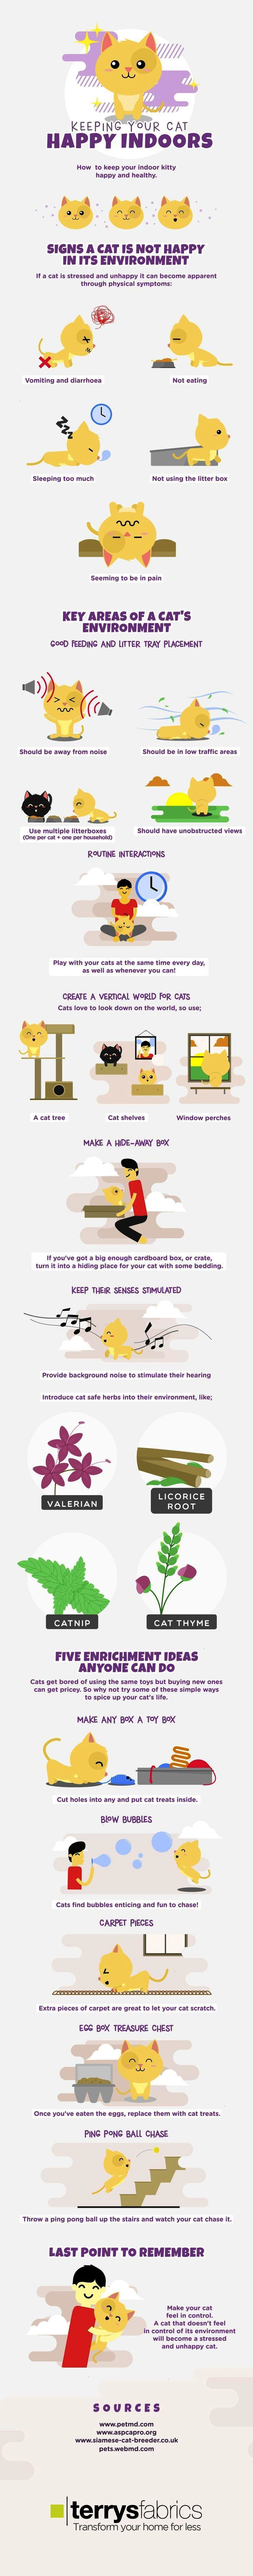 Spectacular Cats And Kittens Playing Repin Cat Infographic Inside Cat Pet Hacks